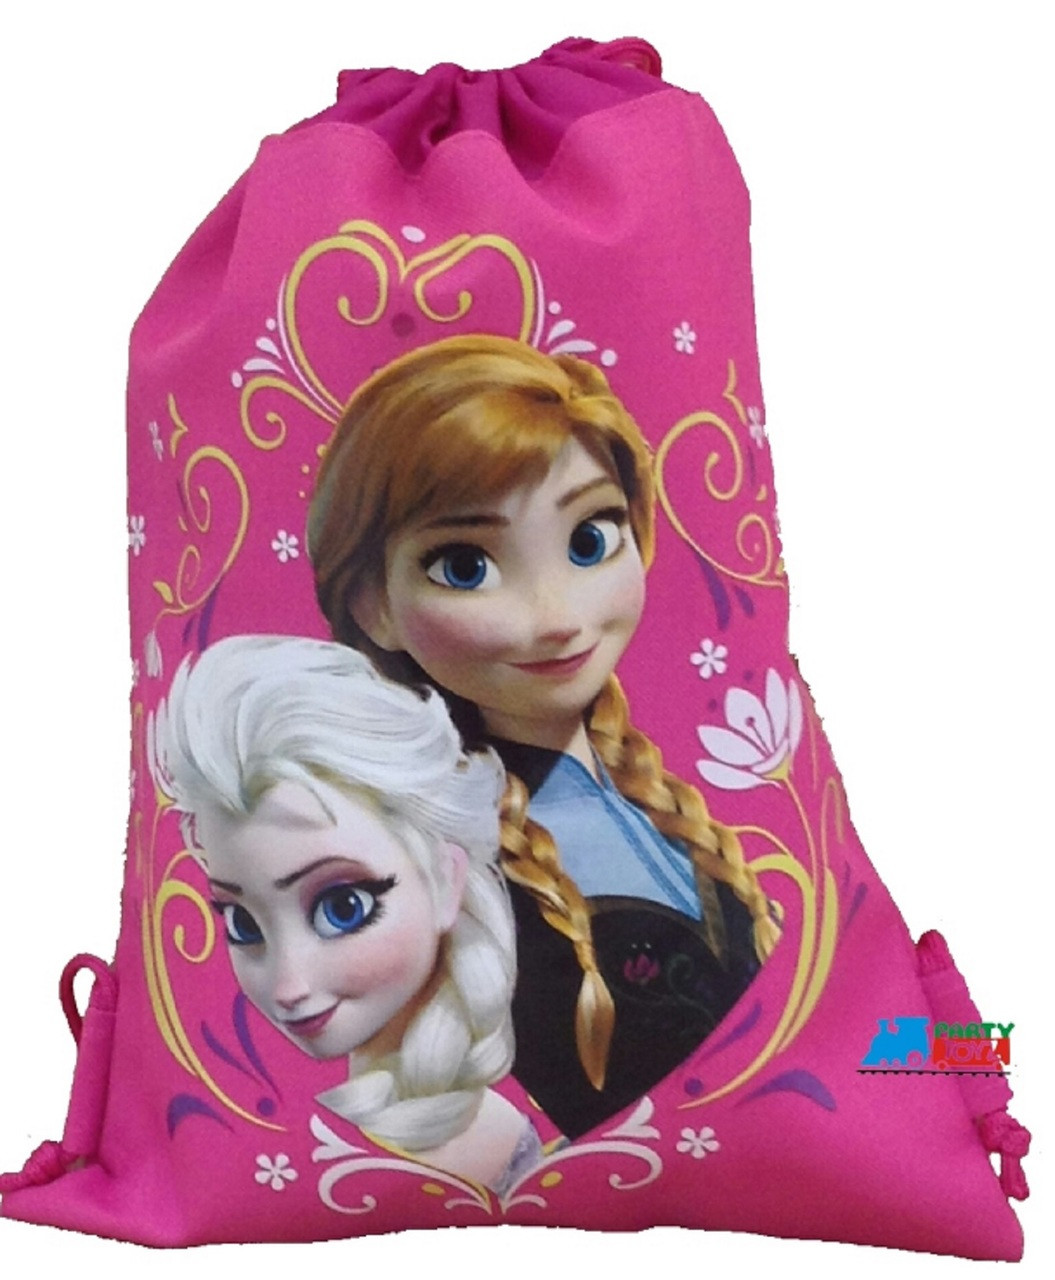 Drawstring Bag - Frozen Princess Anna Elsa Cloth String Bag Sack Pack - Pink